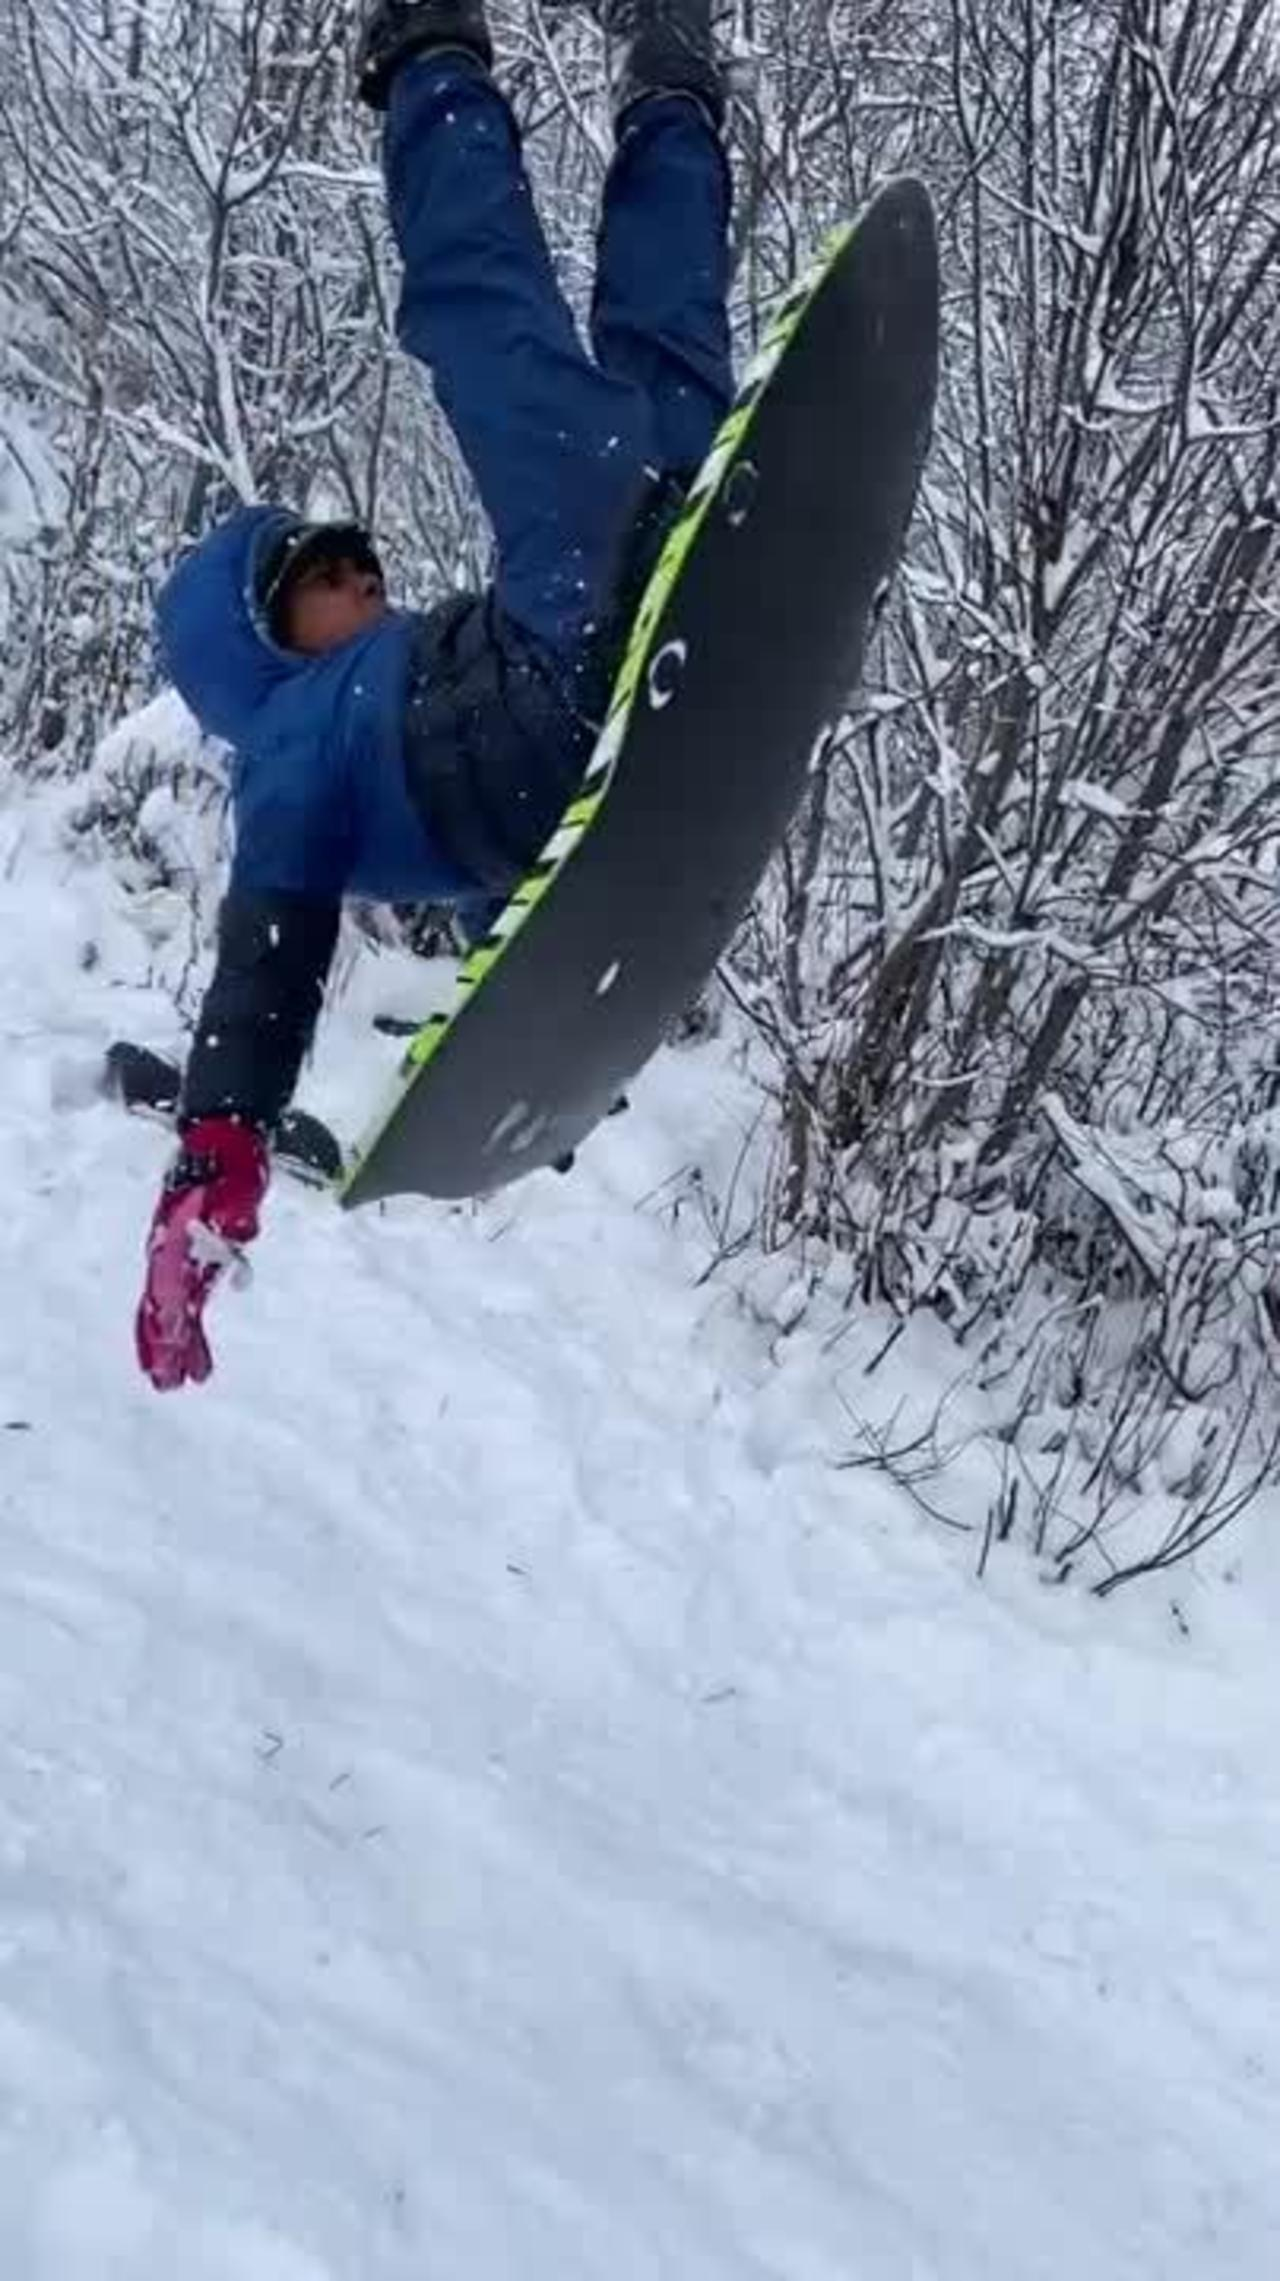 Kid Sledding Down Snowy Slope Falls Over Backwards